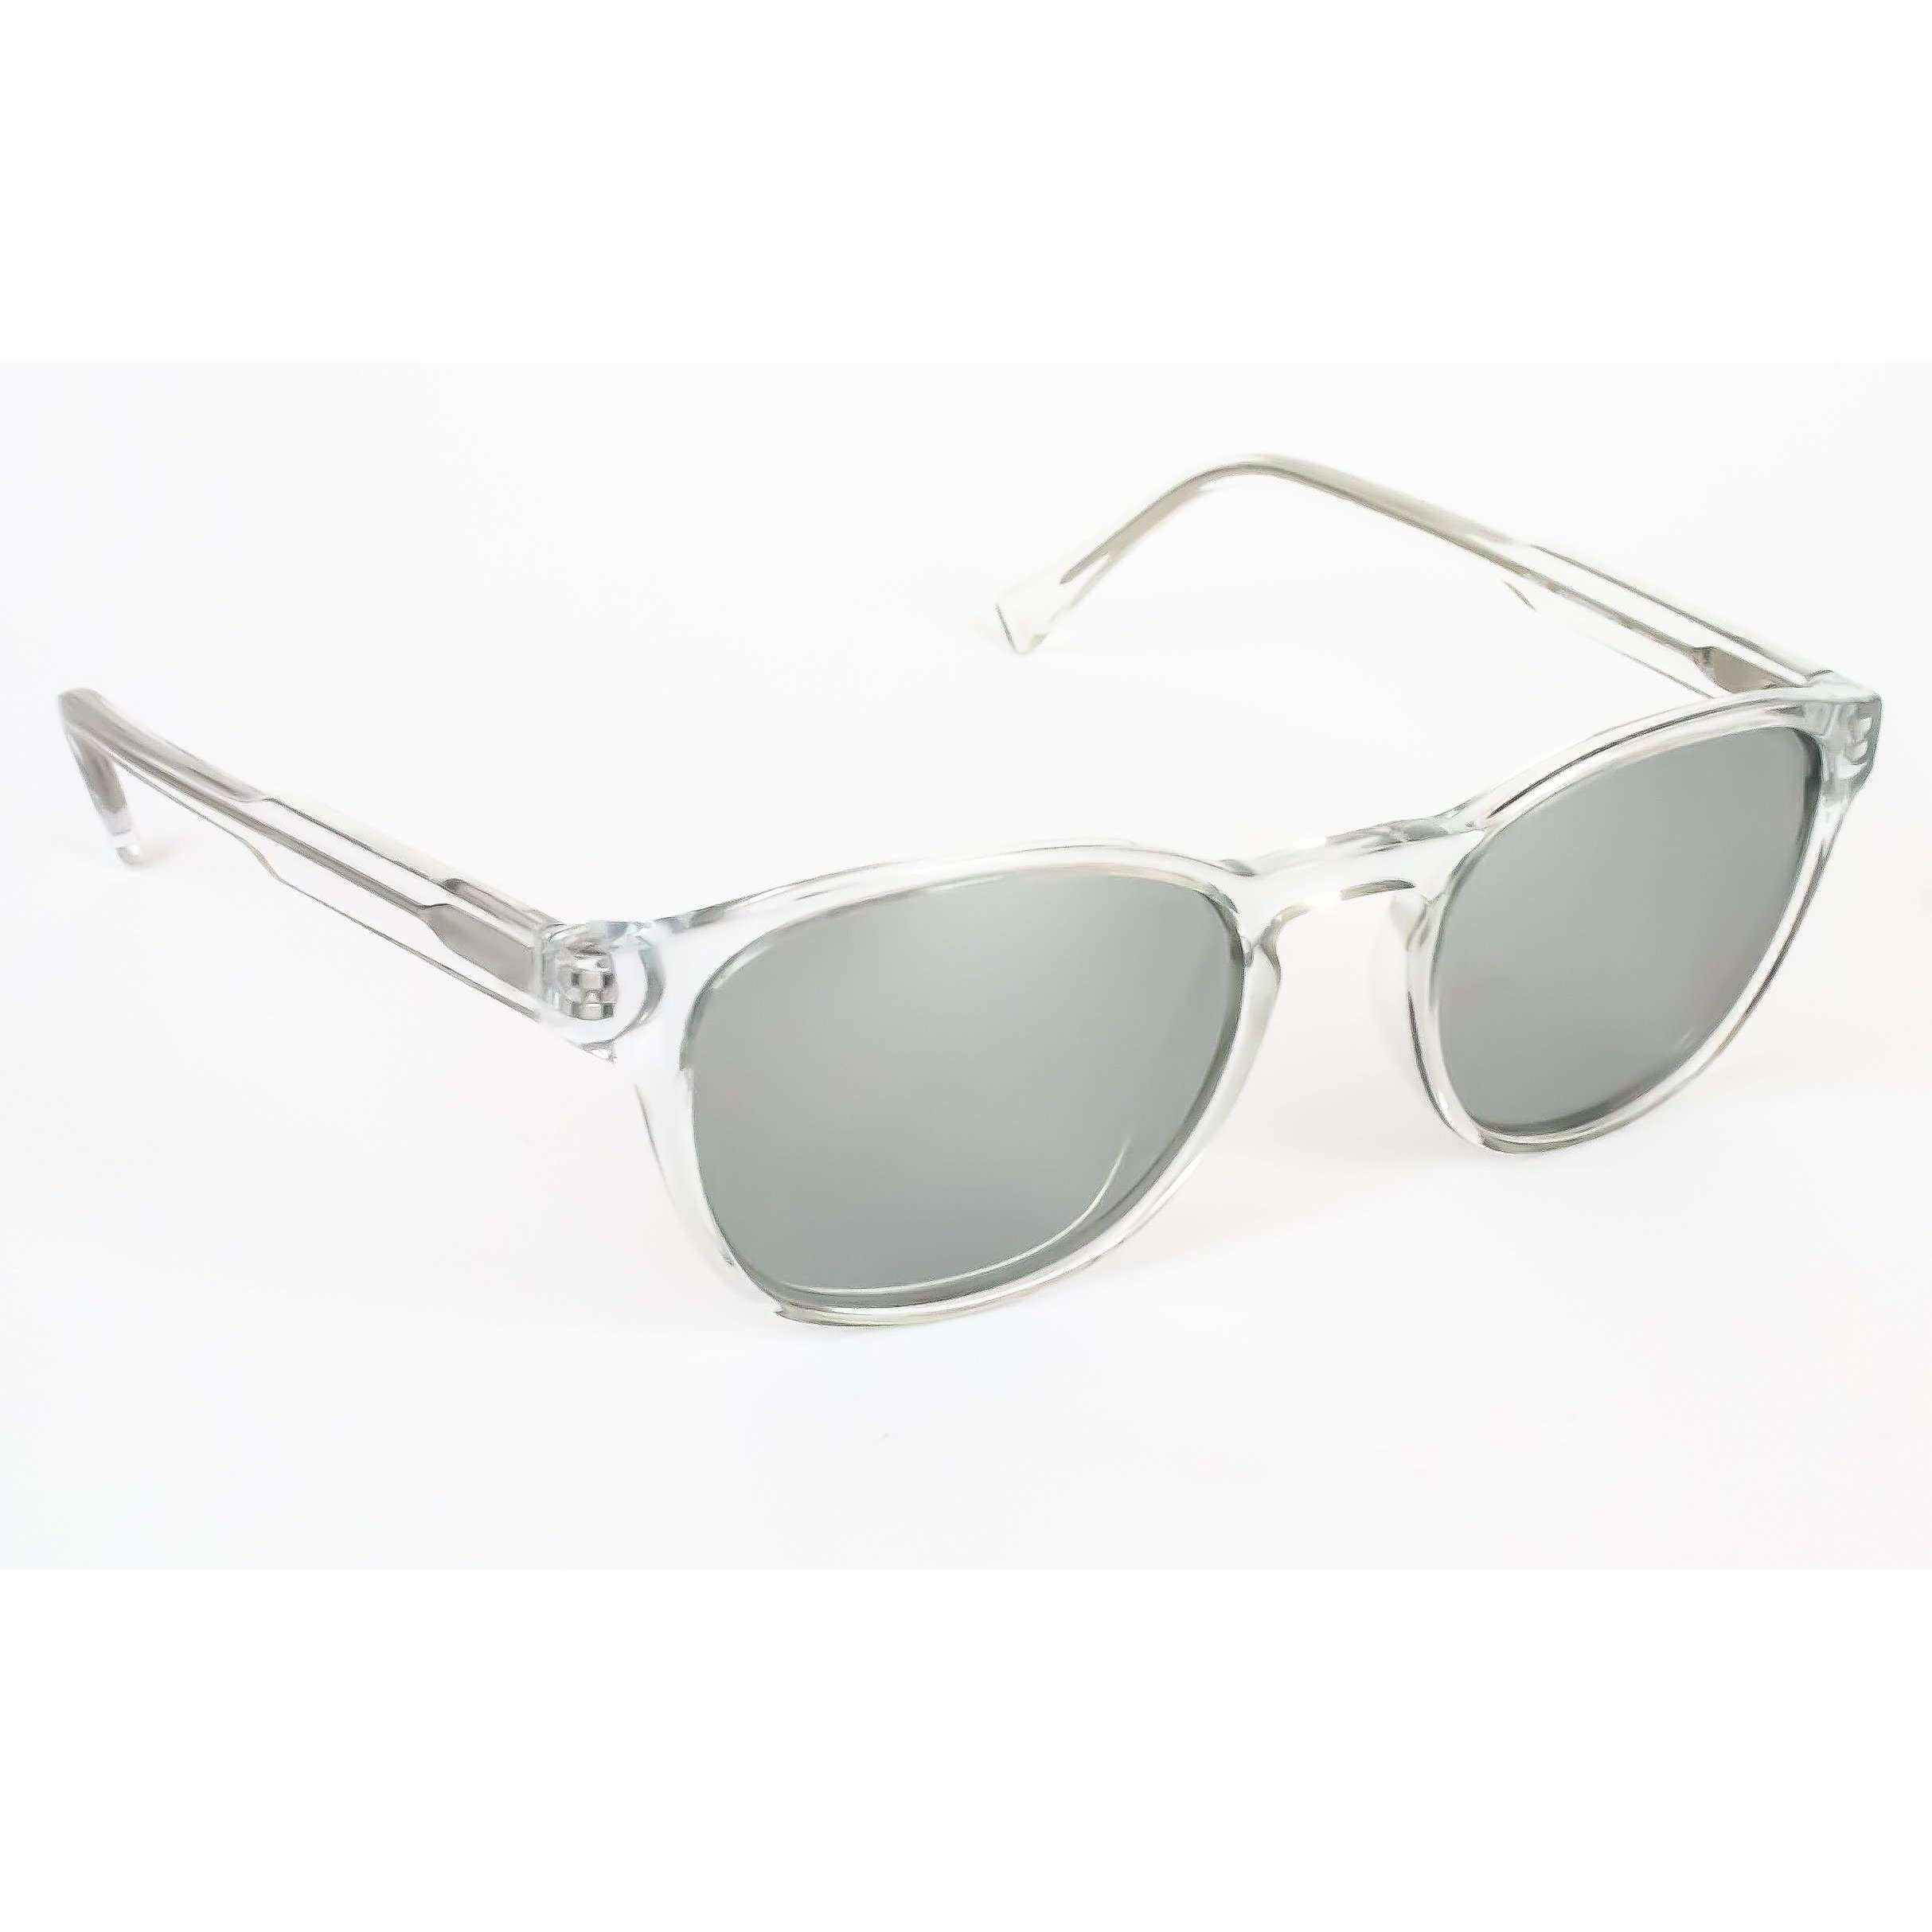 SunTropical Mirrored Sunglasses Unisex